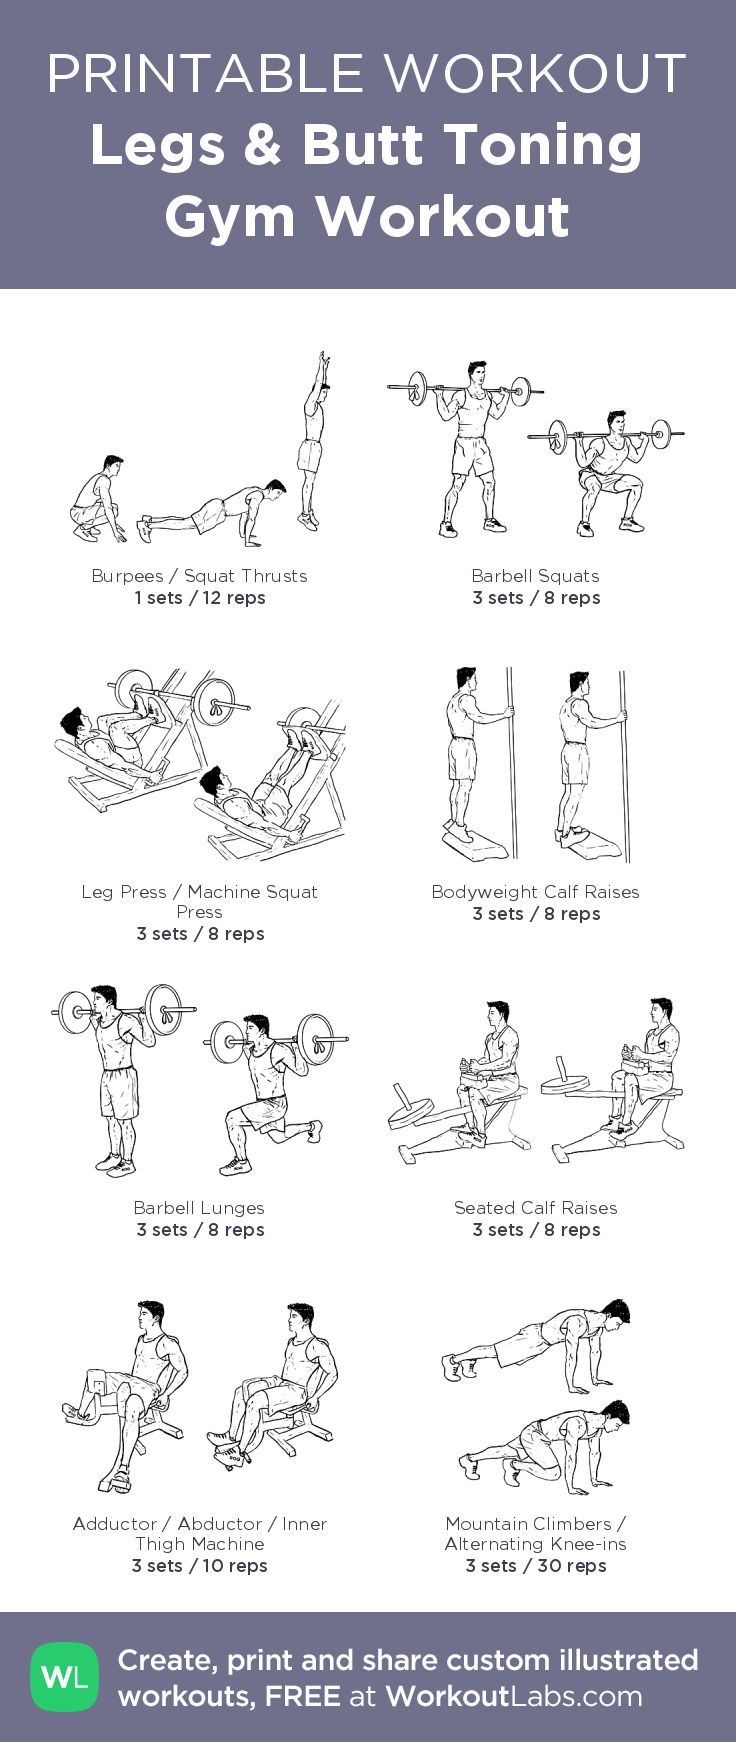 Legs & Butt Toning Gym Workout –illustrated exercise plan created at WorkoutLabs.com • Click for a printable PDF and to build your own #customworkout